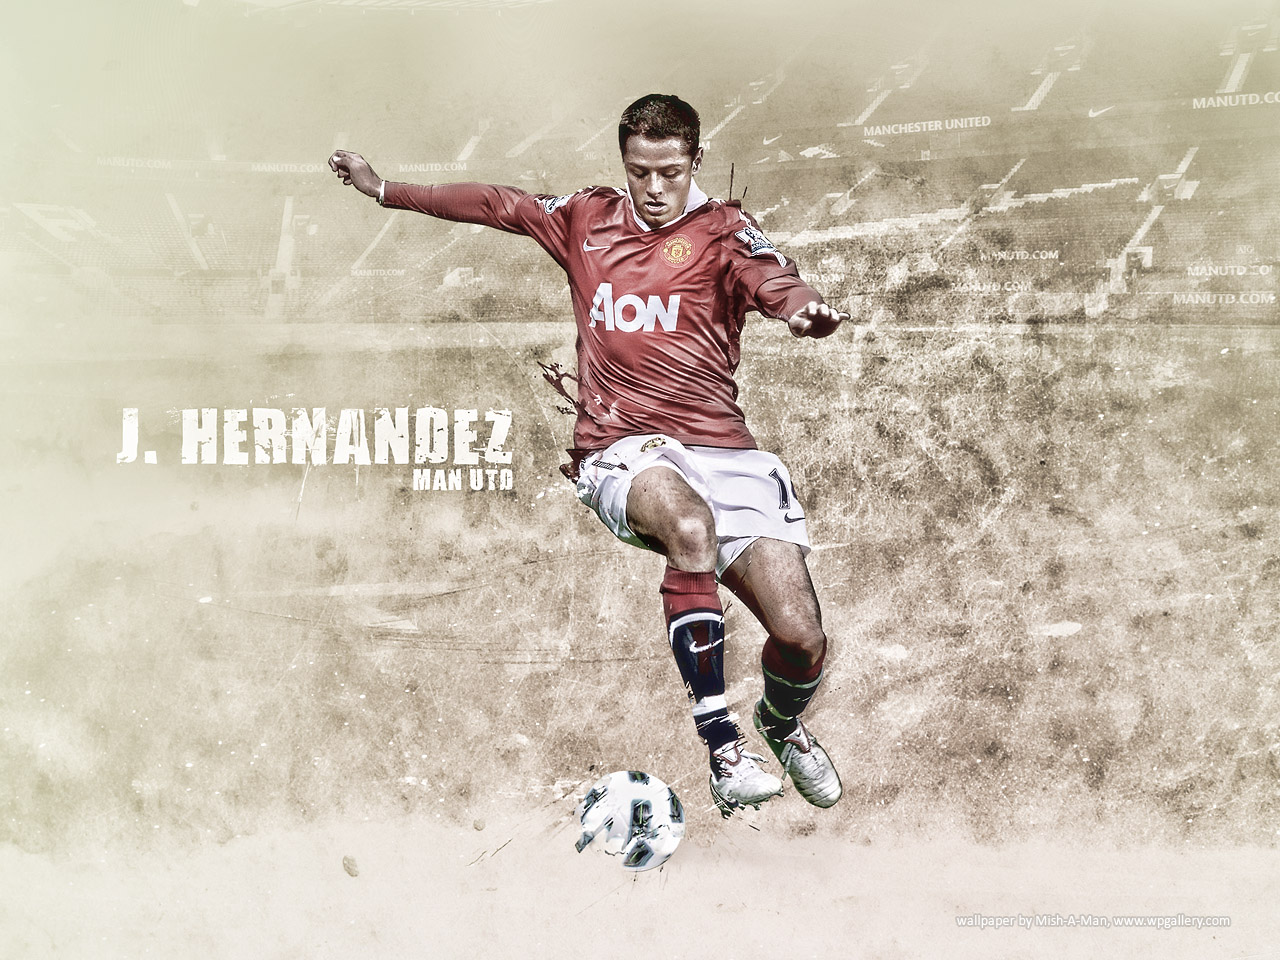 http://4.bp.blogspot.com/-ePZV_PAOzR0/TV9cwHH4ZCI/AAAAAAAAE3k/zuSIyc5jo7g/s1600/chicharito_united_wallpaper.jpg